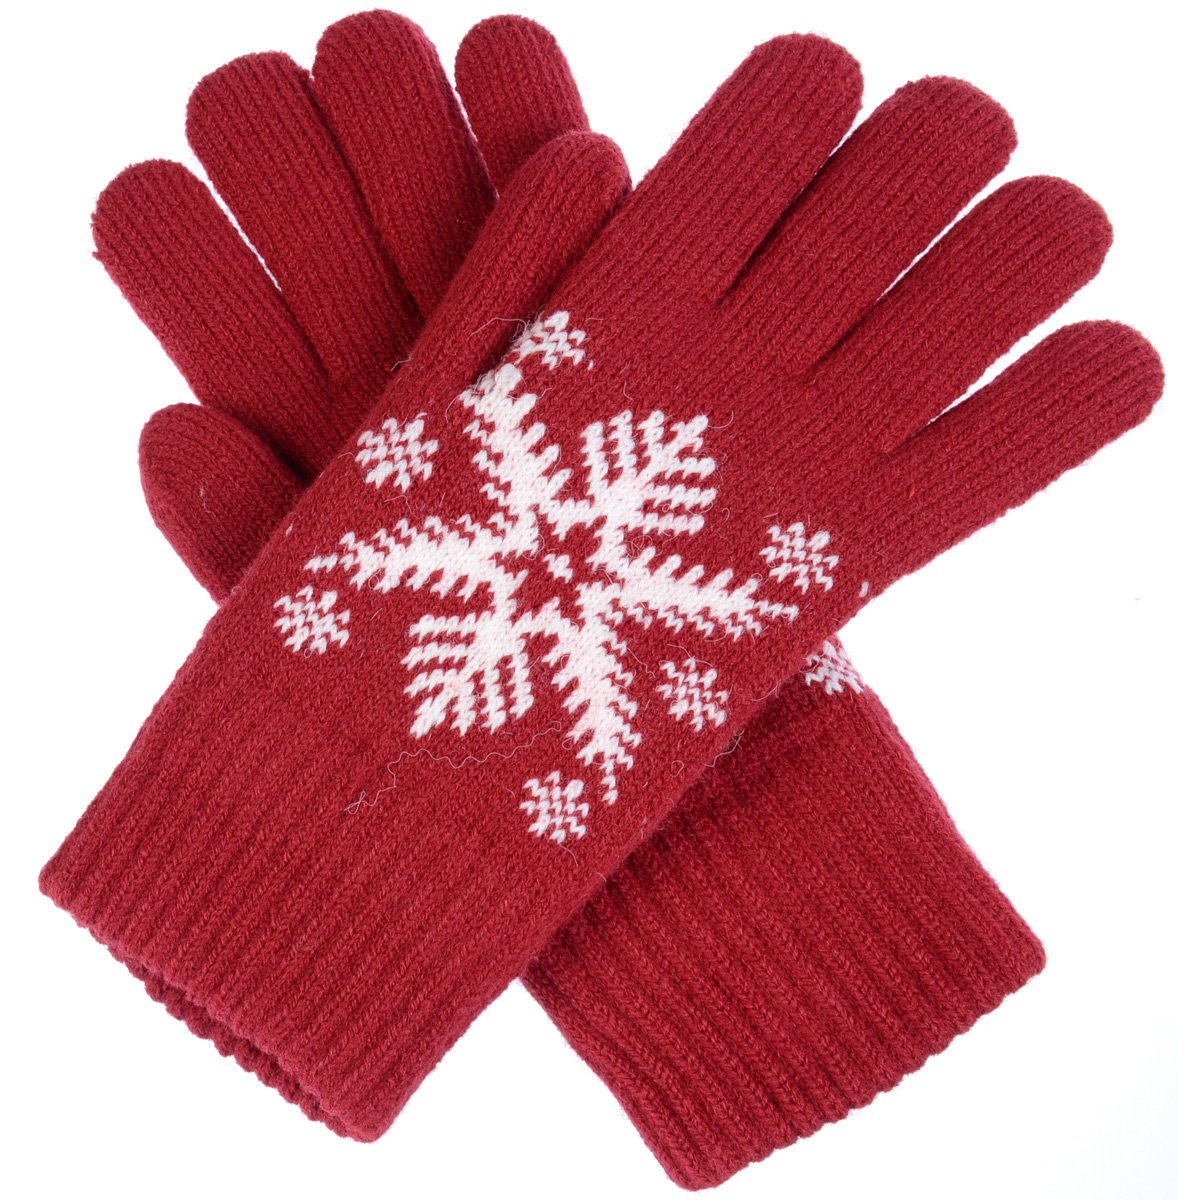 BYOS Womens Winter Ultra Warm Plush Fleece Lined Knit Gloves With Various Pattern Design (Red Snowflake) by Be Your Own Style (Image #2)